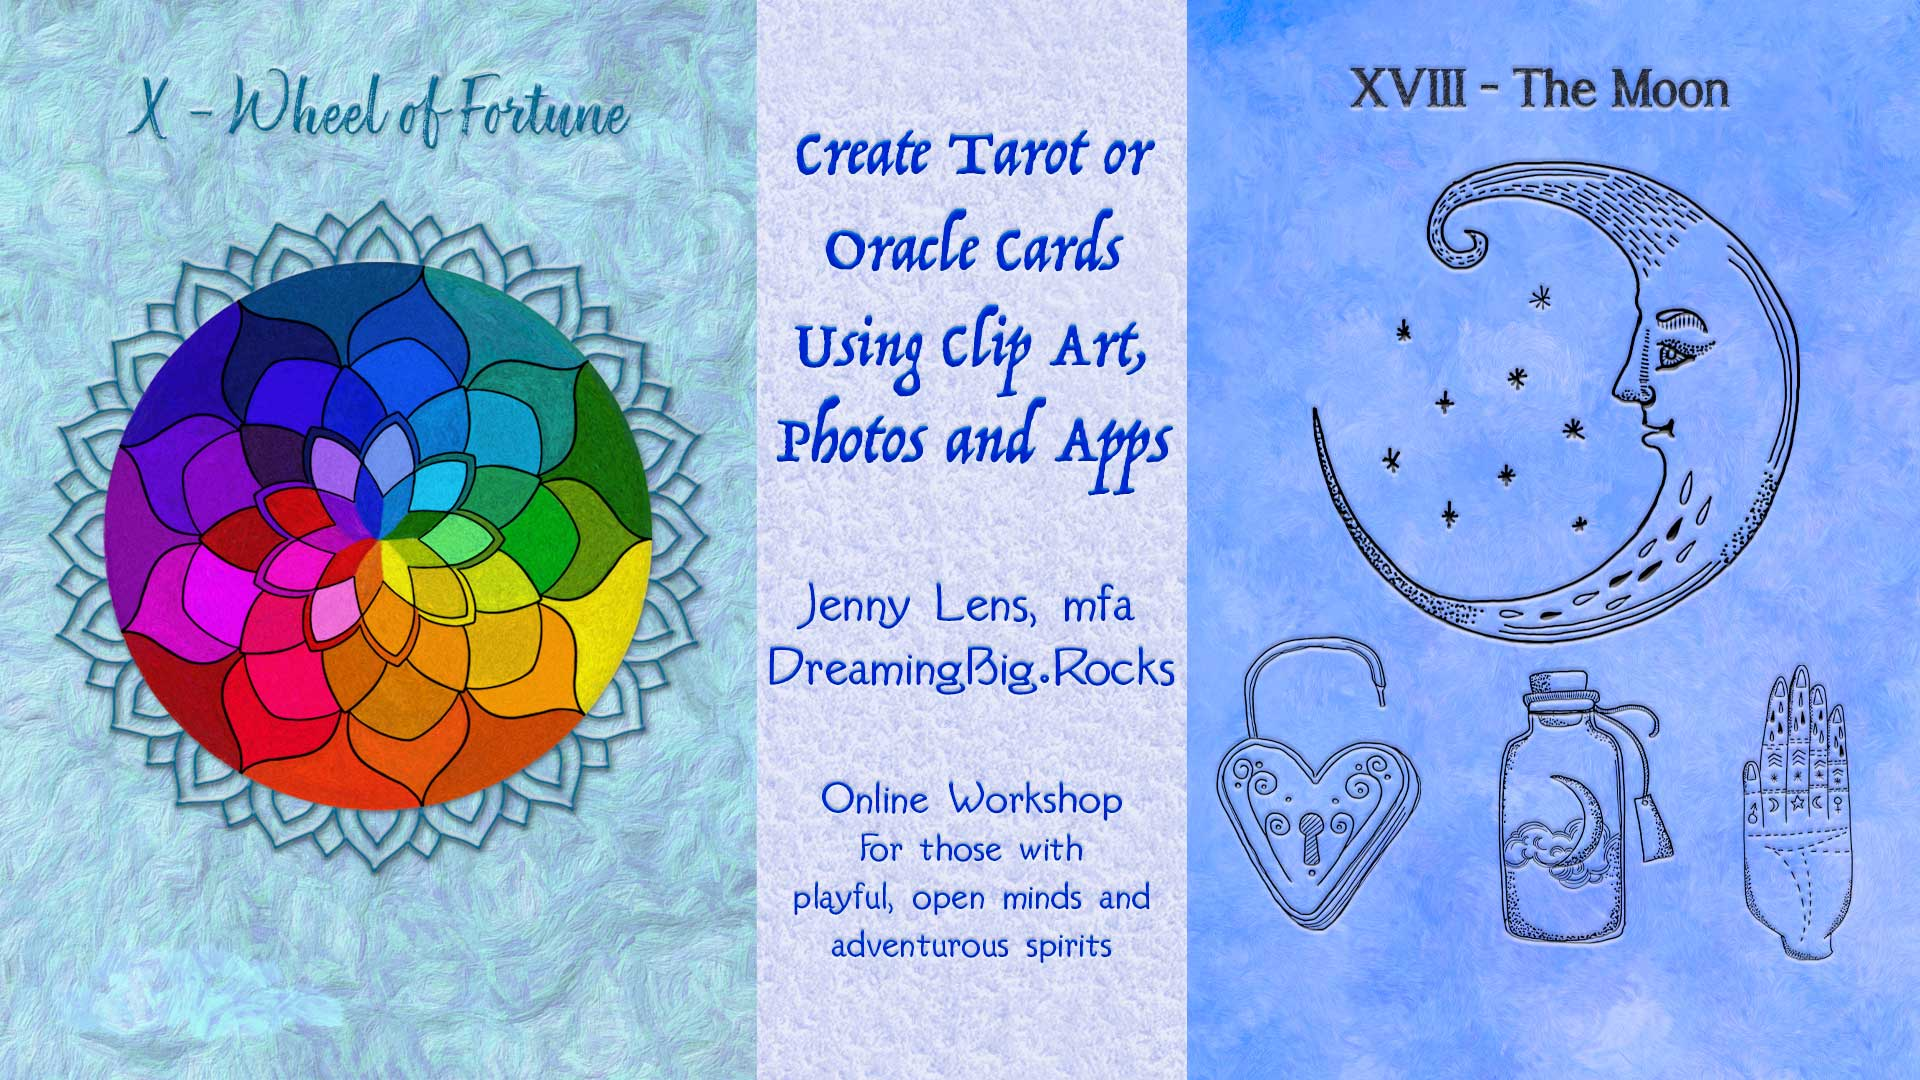 Create Tarot and Oracle Cards Using Clip Art and Photos